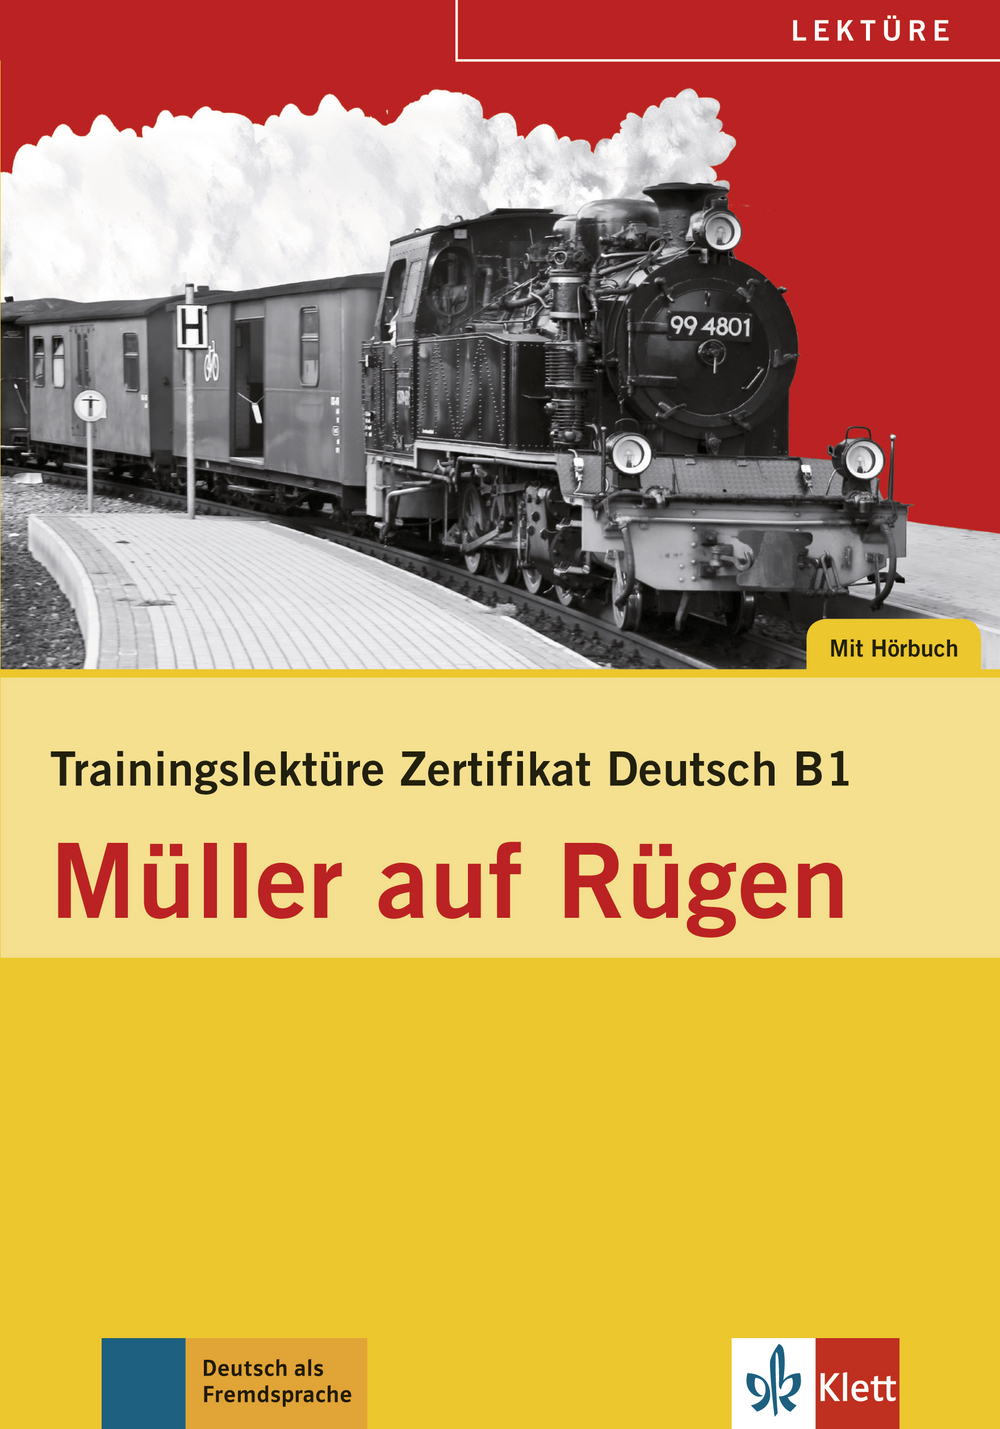 Trainingslektüre Zertifikat Deutsch B1